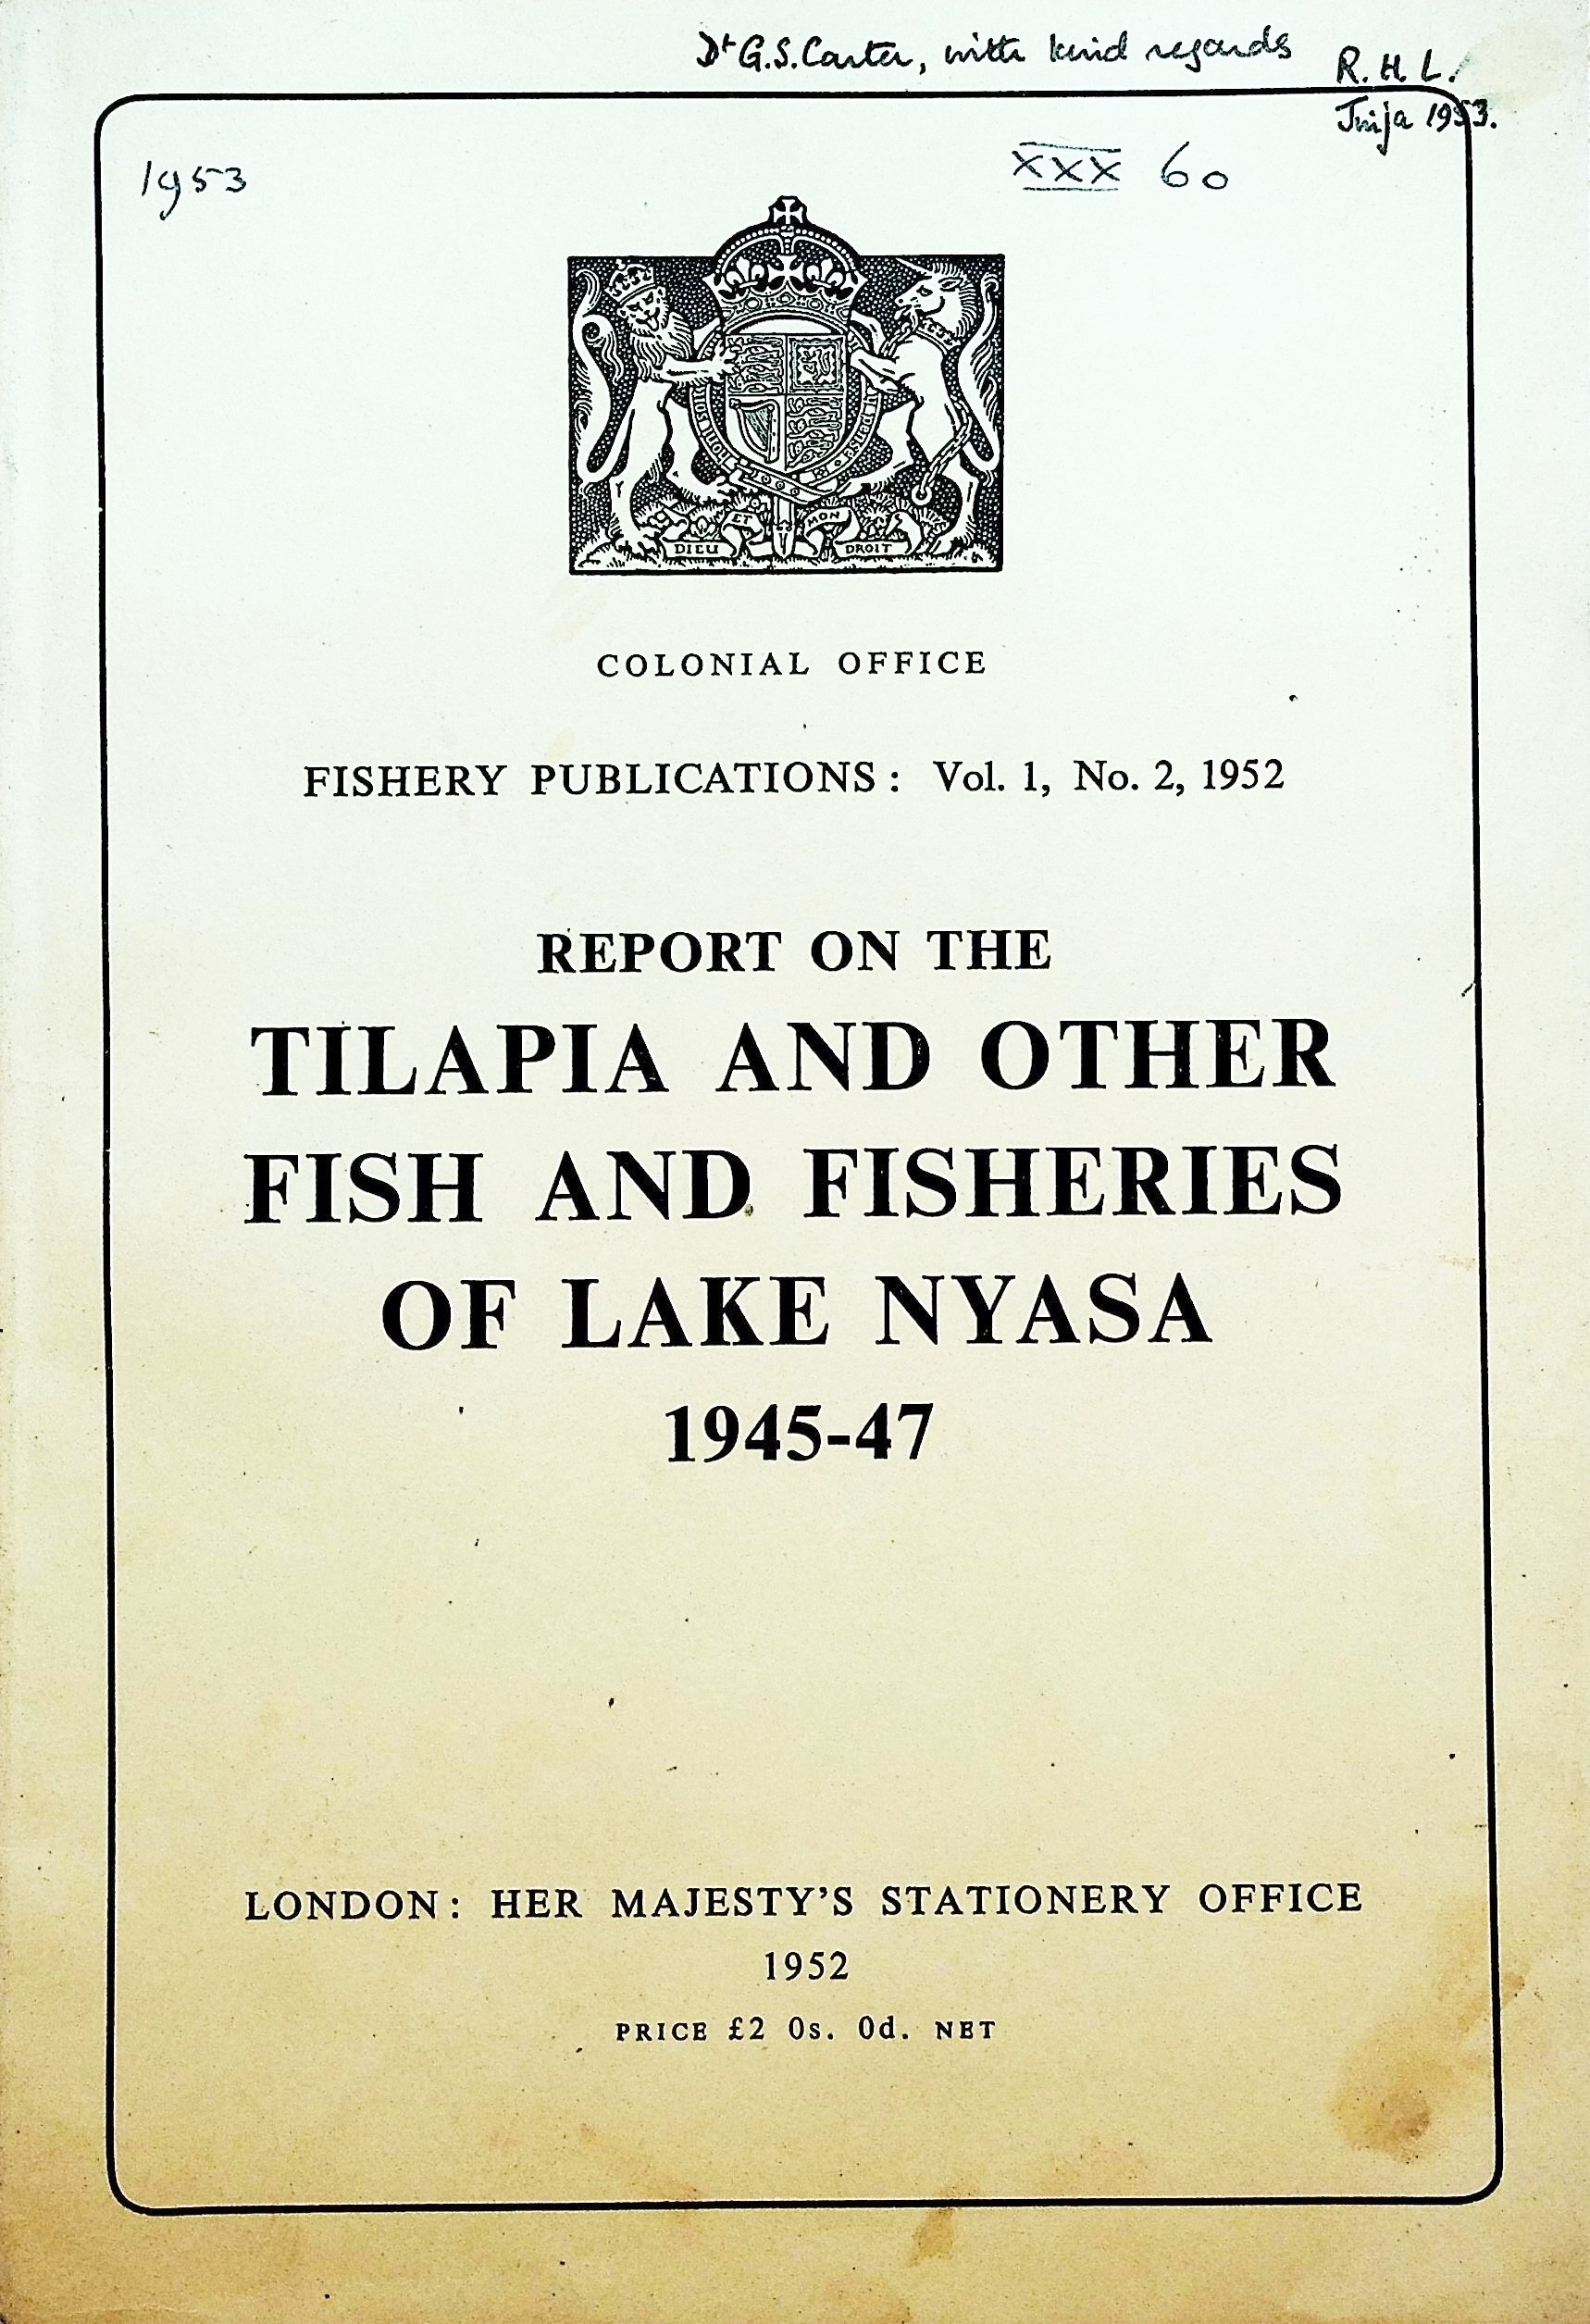 Image for Report on the Tilapia and Other Fish and FIsheries of Lake Nyasa 1945-47